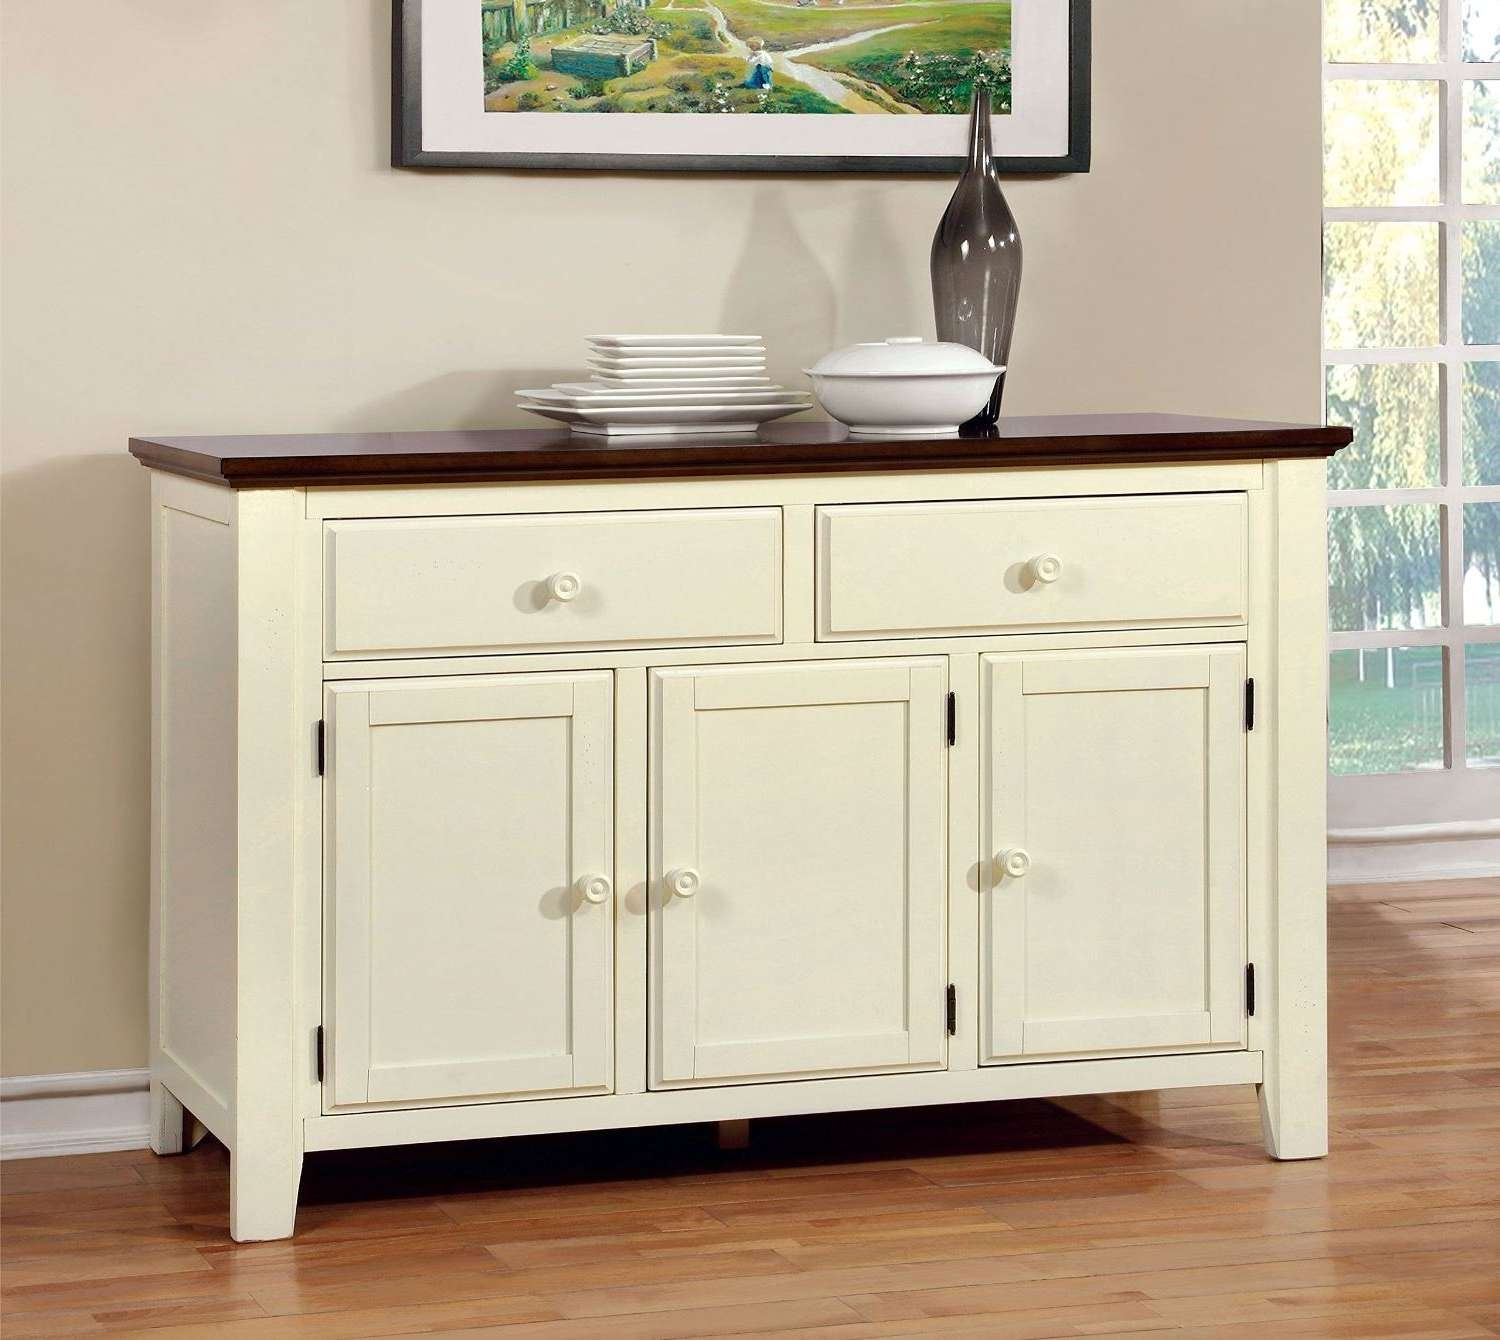 Cottage Style Buffet, Furniture Server America Pauline Cottage Intended For Buffet Sideboards Servers (View 9 of 20)